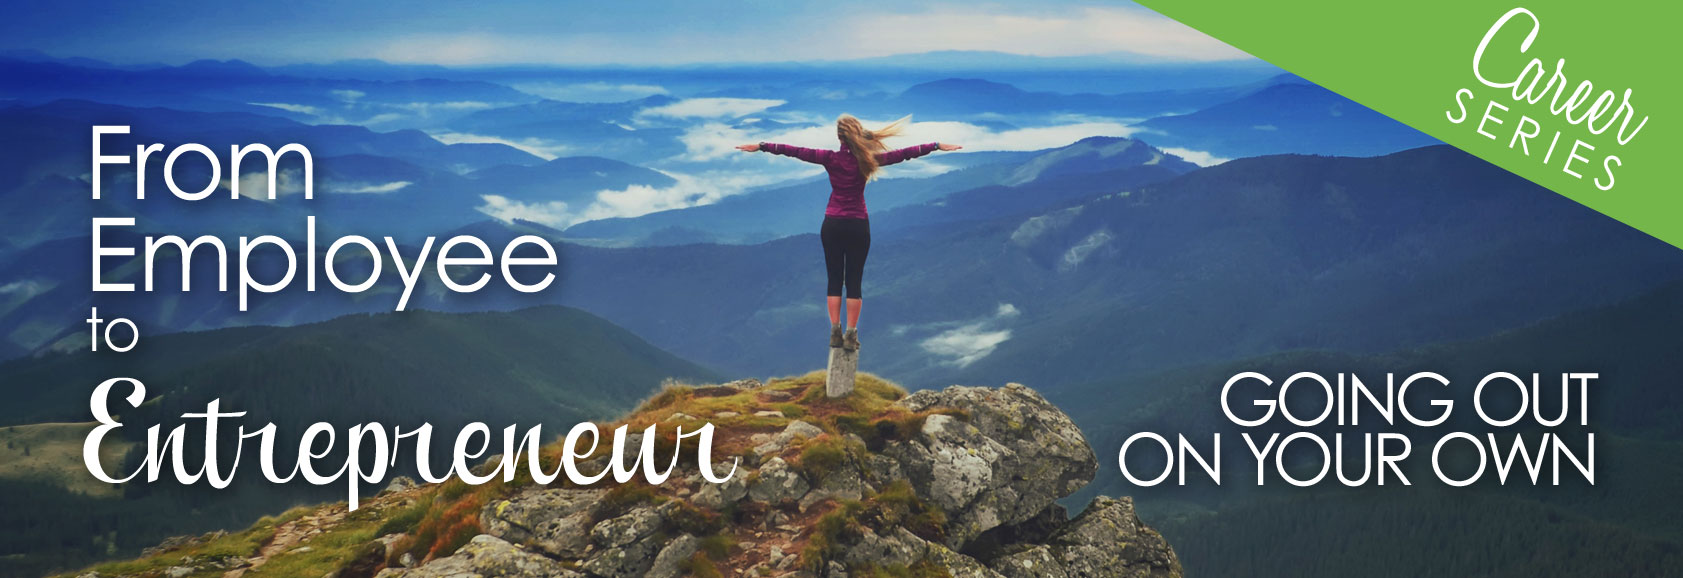 From Employee to Entrepreneur event banner image of woman looking at mountains